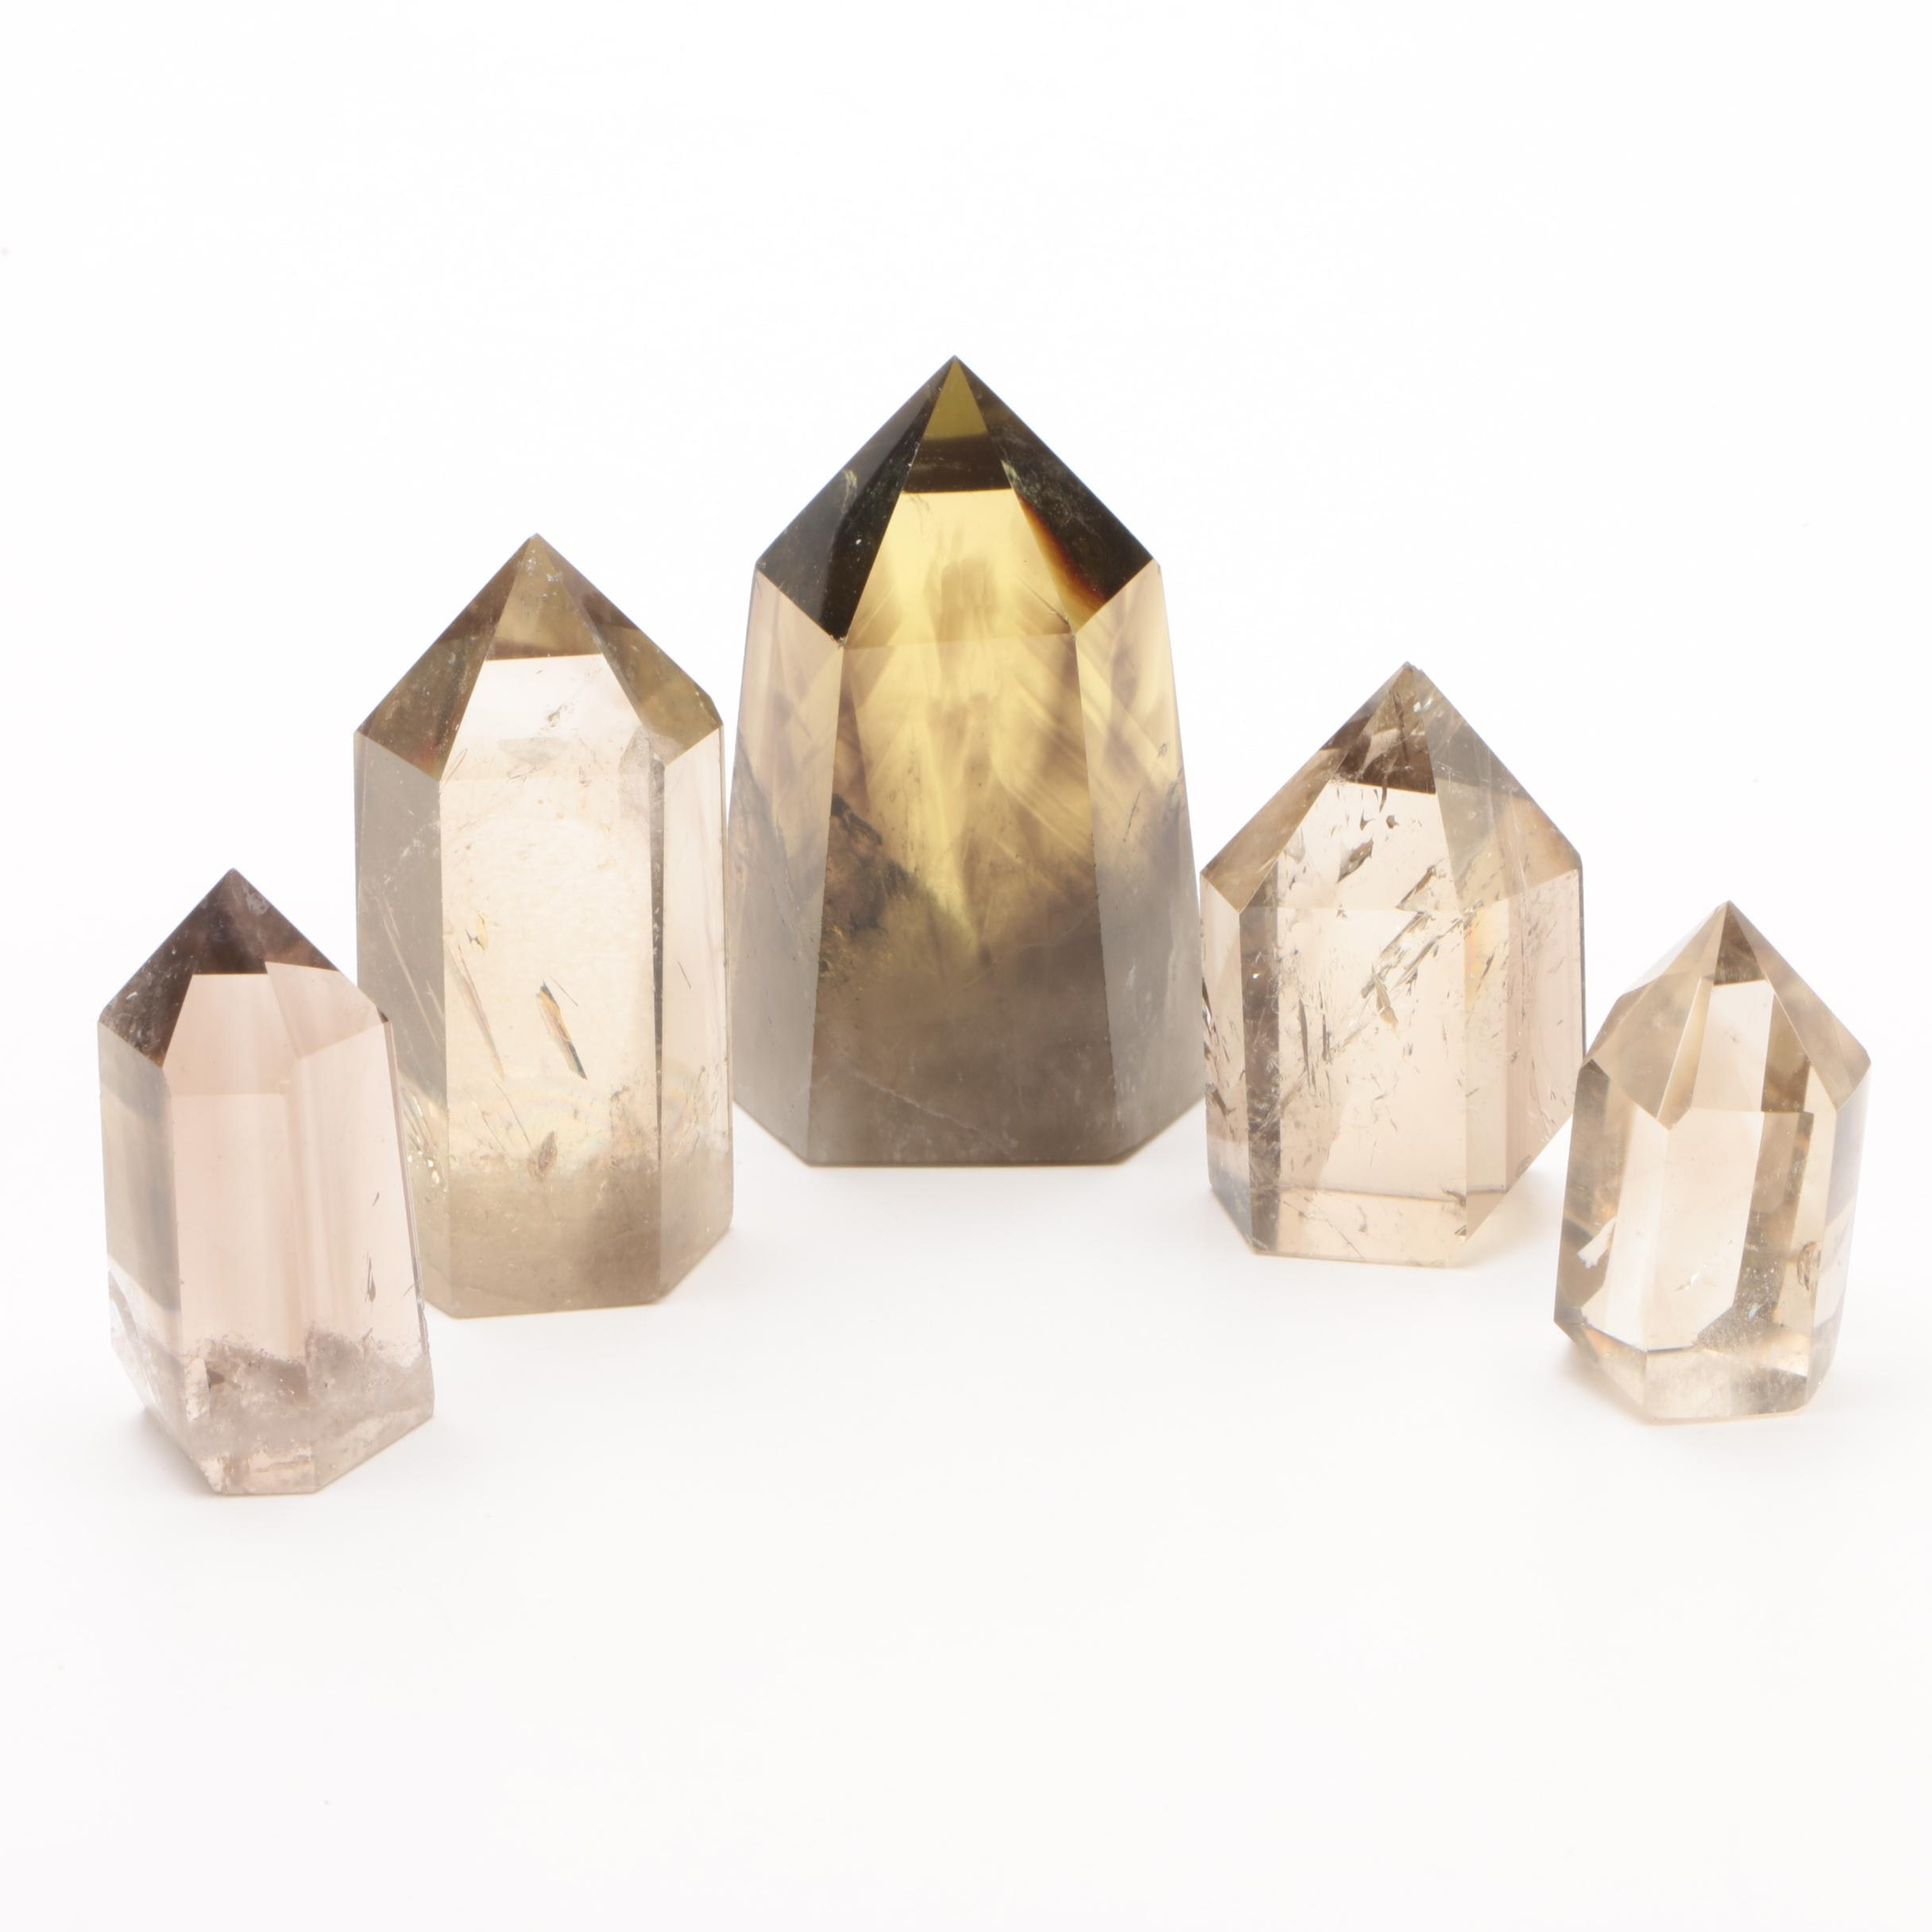 Cut Smoky Quartz Specimens